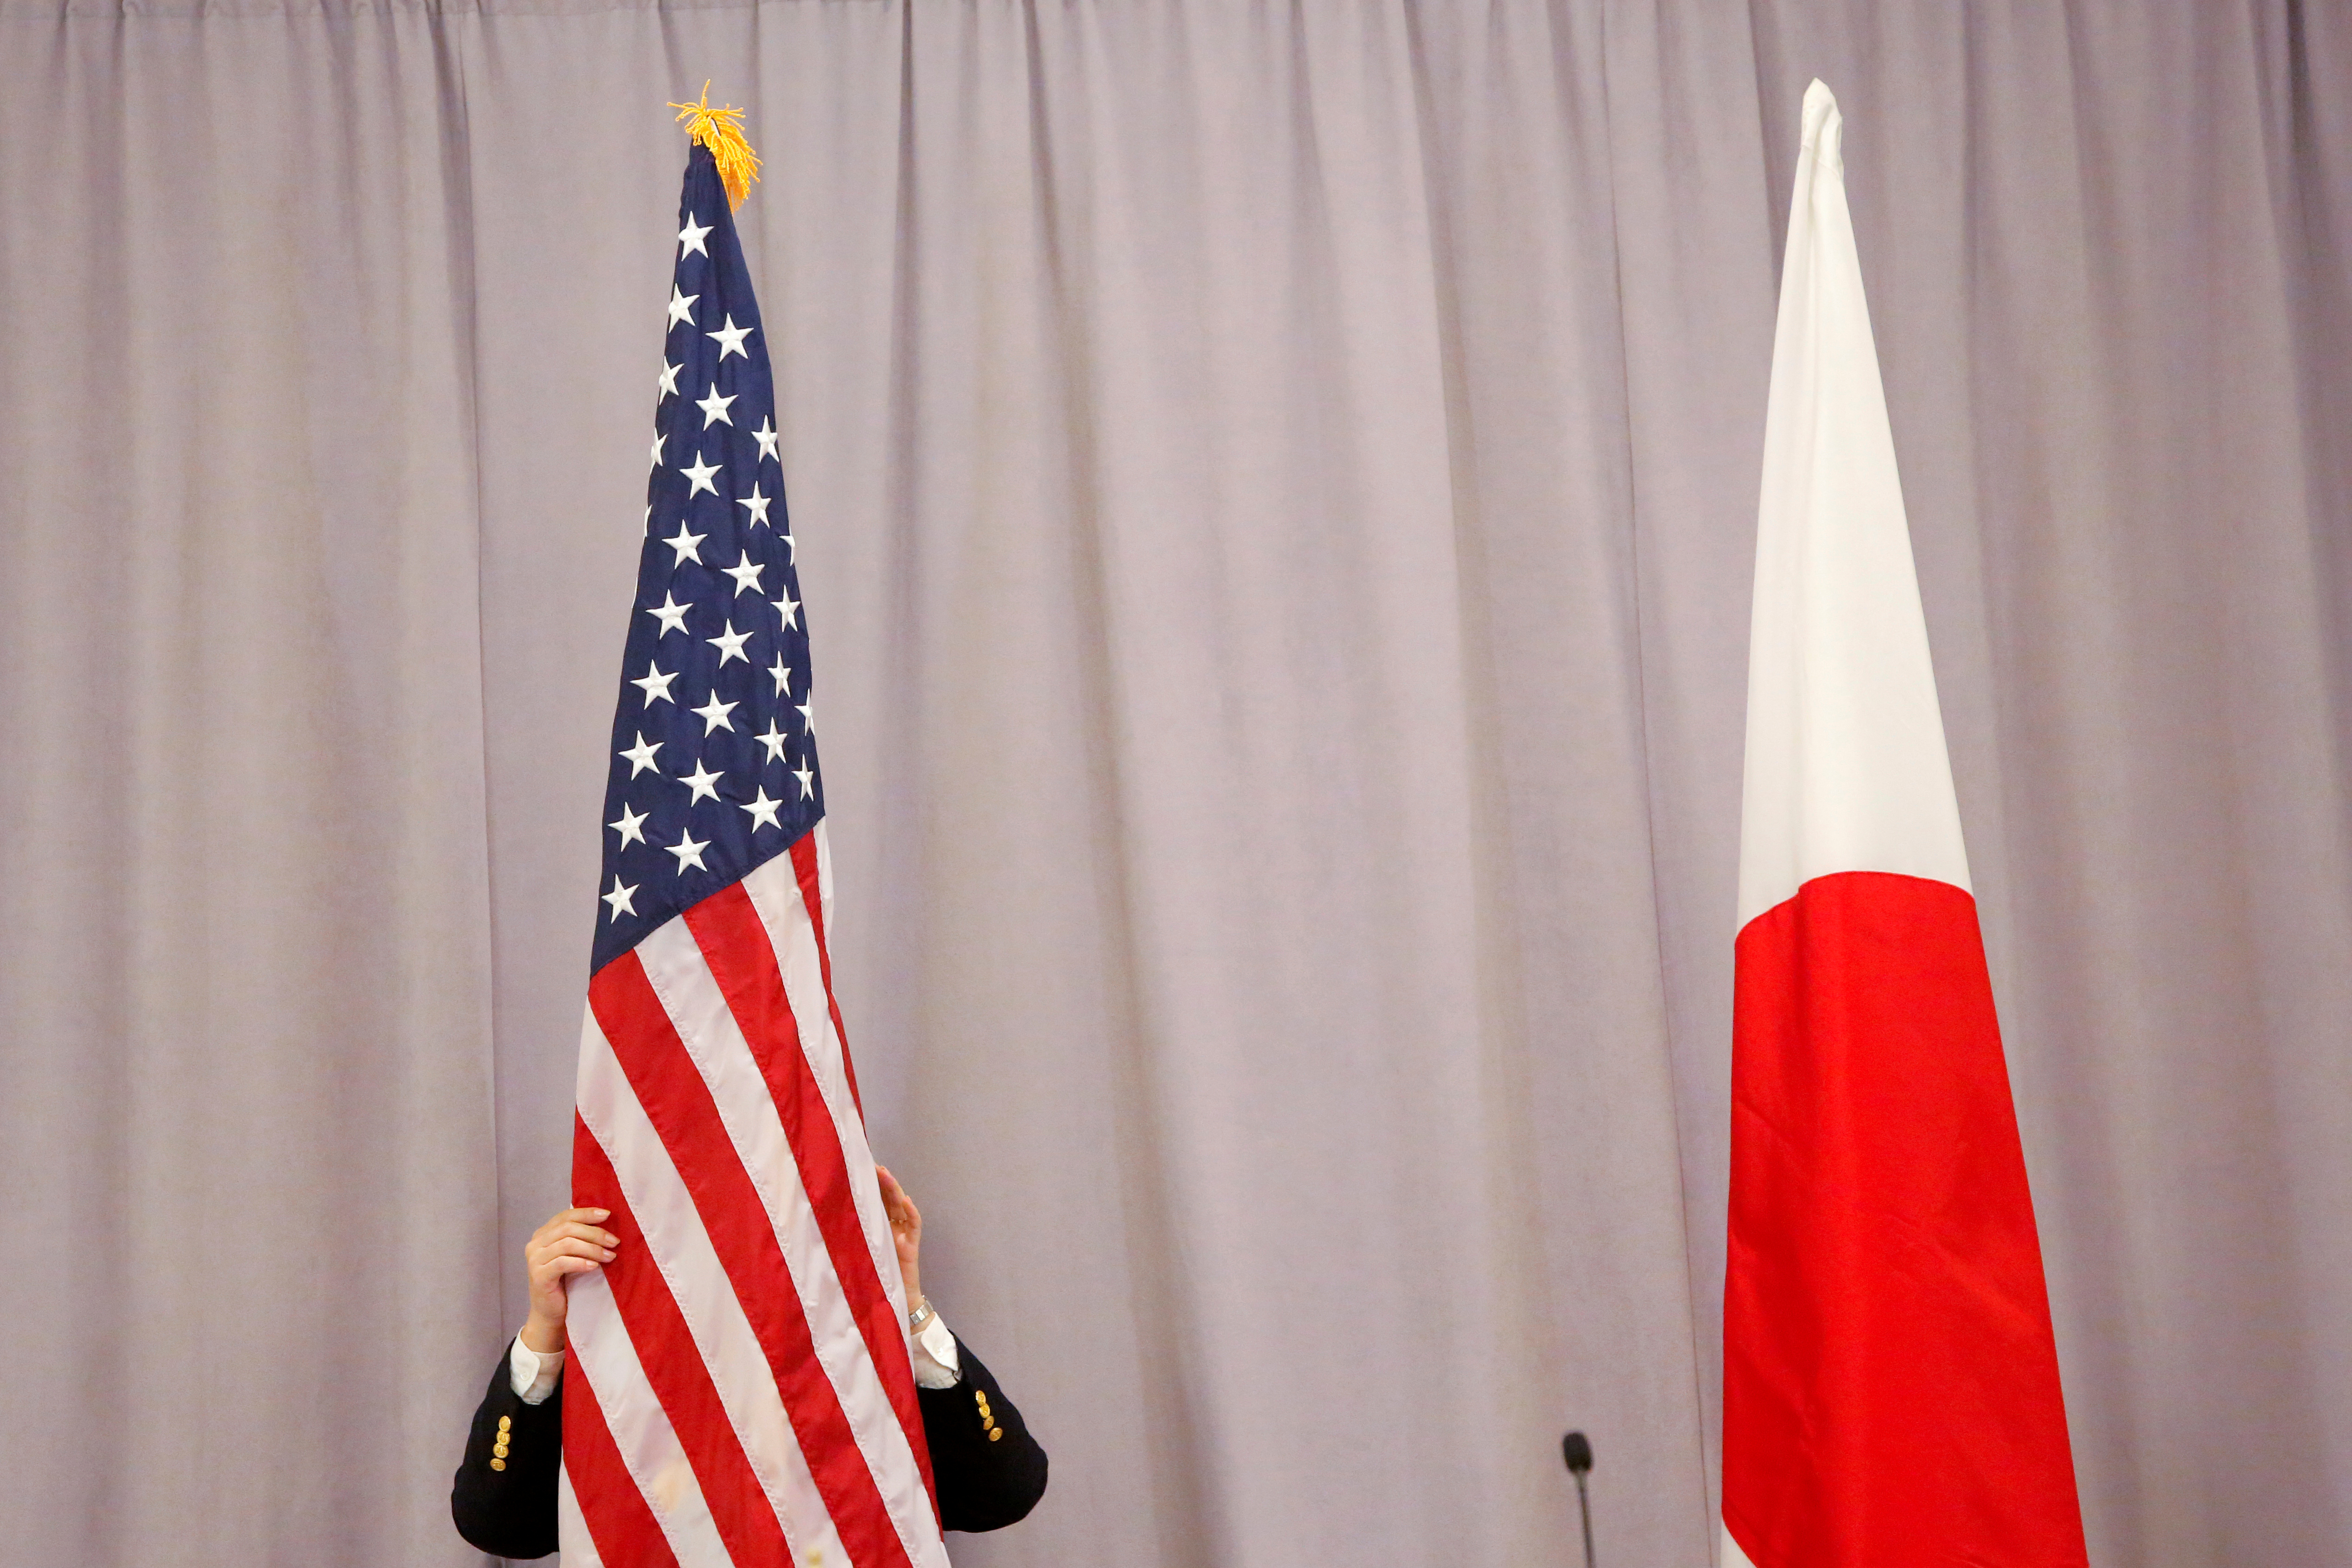 A worker adjusts the U.S. flag before Japanese Prime Minister Shinzo Abe addresses media following a meeting with President-elect Donald Trump in Manhattan, New York, U.S., November 17, 2016.  REUTERS/Andrew Kelly